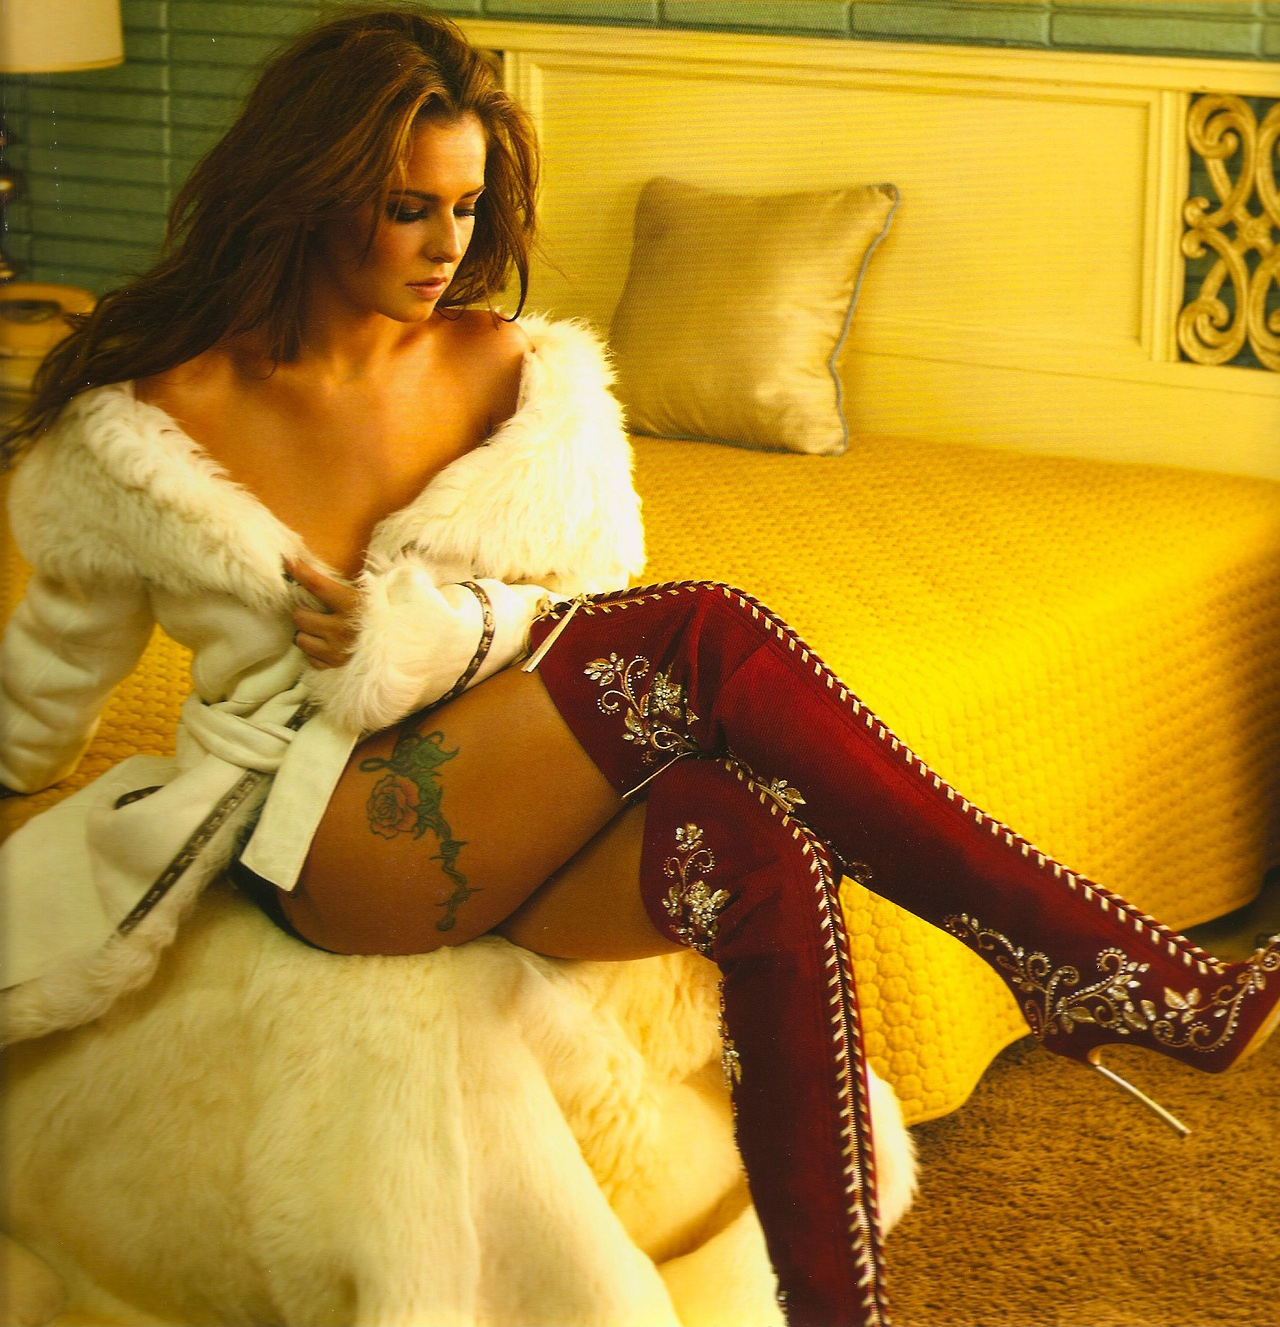 Cheryl cole's sultry new calendar shoot is her sexiest yet